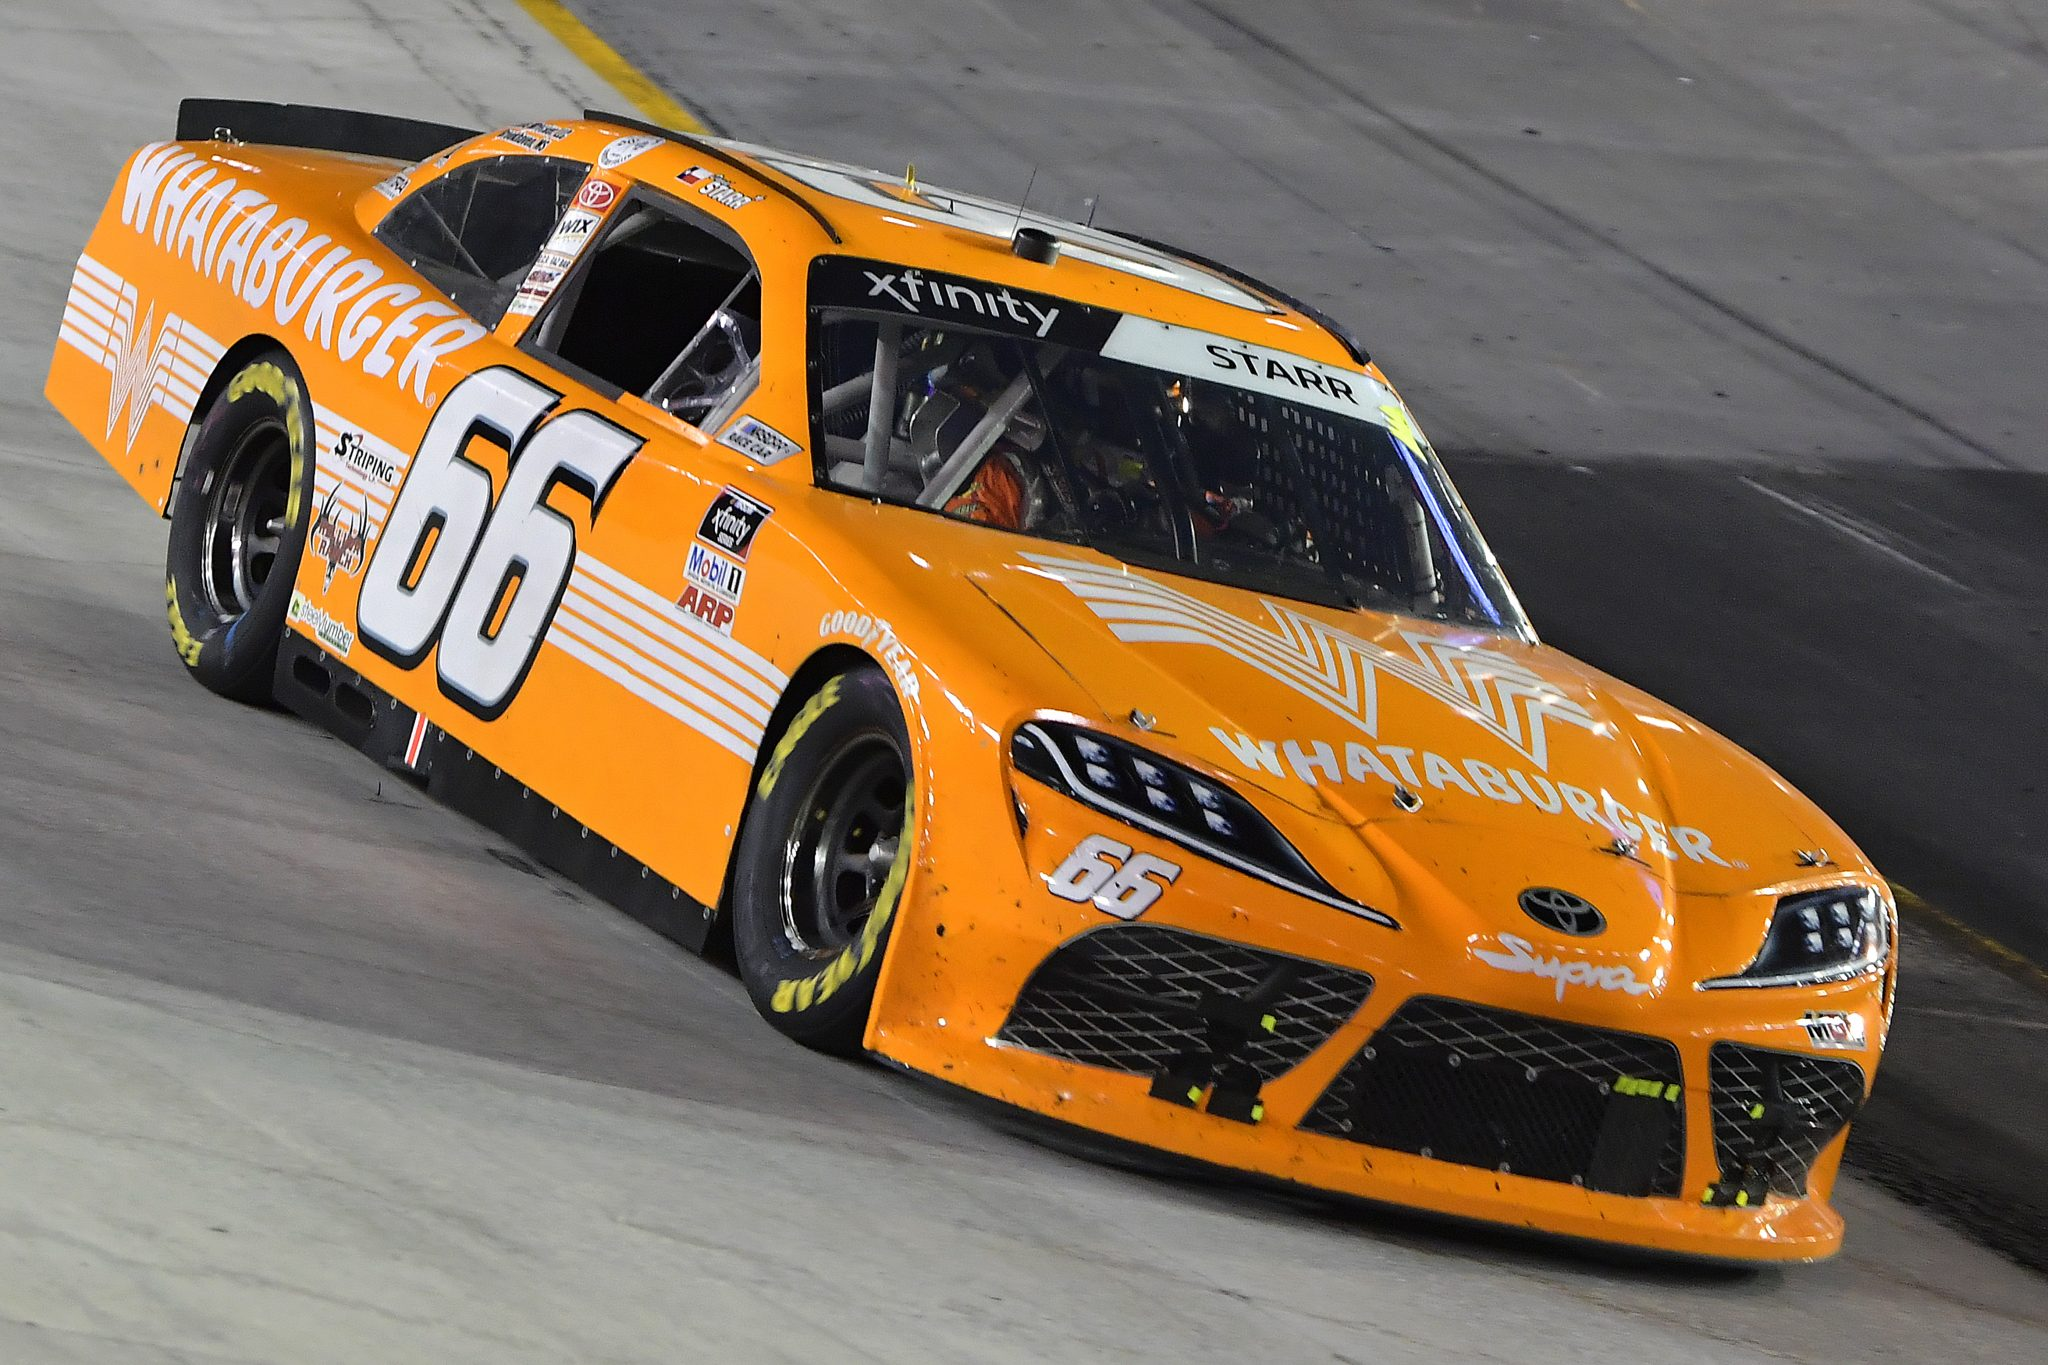 BRISTOL, TENNESSEE - SEPTEMBER 17: David Starr, driver of the #66 Whataburger Toyota, drives during the NASCAR Xfinity Series Food City 300 at Bristol Motor Speedway on September 17, 2021 in Bristol, Tennessee. (Photo by Logan Riely/Getty Images) | Getty Images